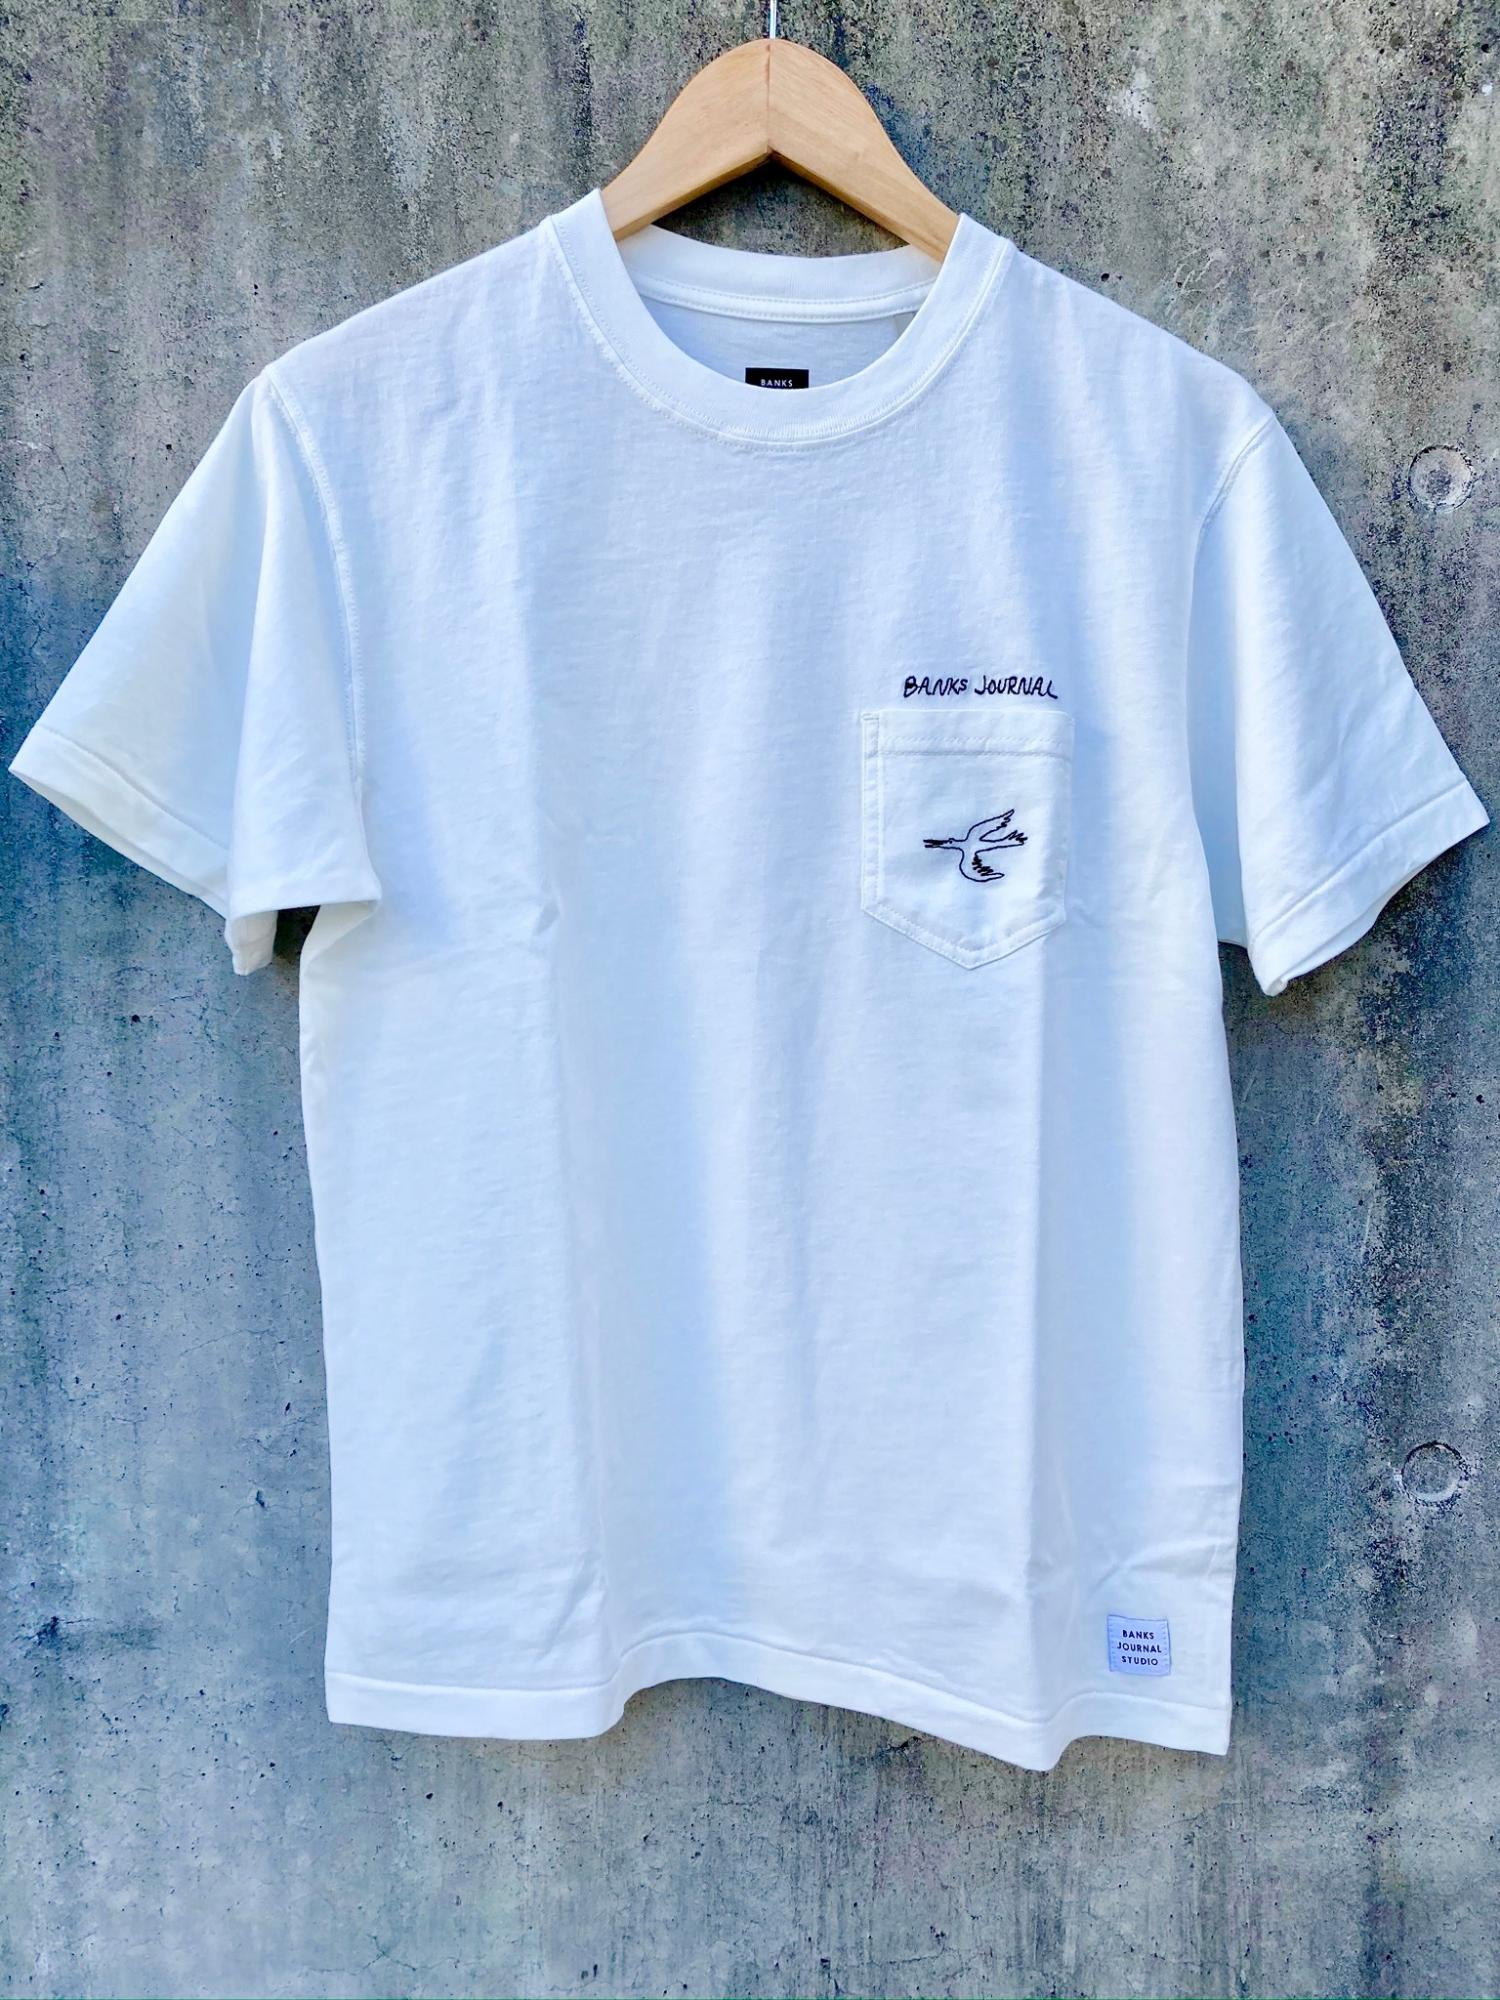 BANKS JOURNAL TY WILLIAMS CALYPSO TEE SHIRT OWH